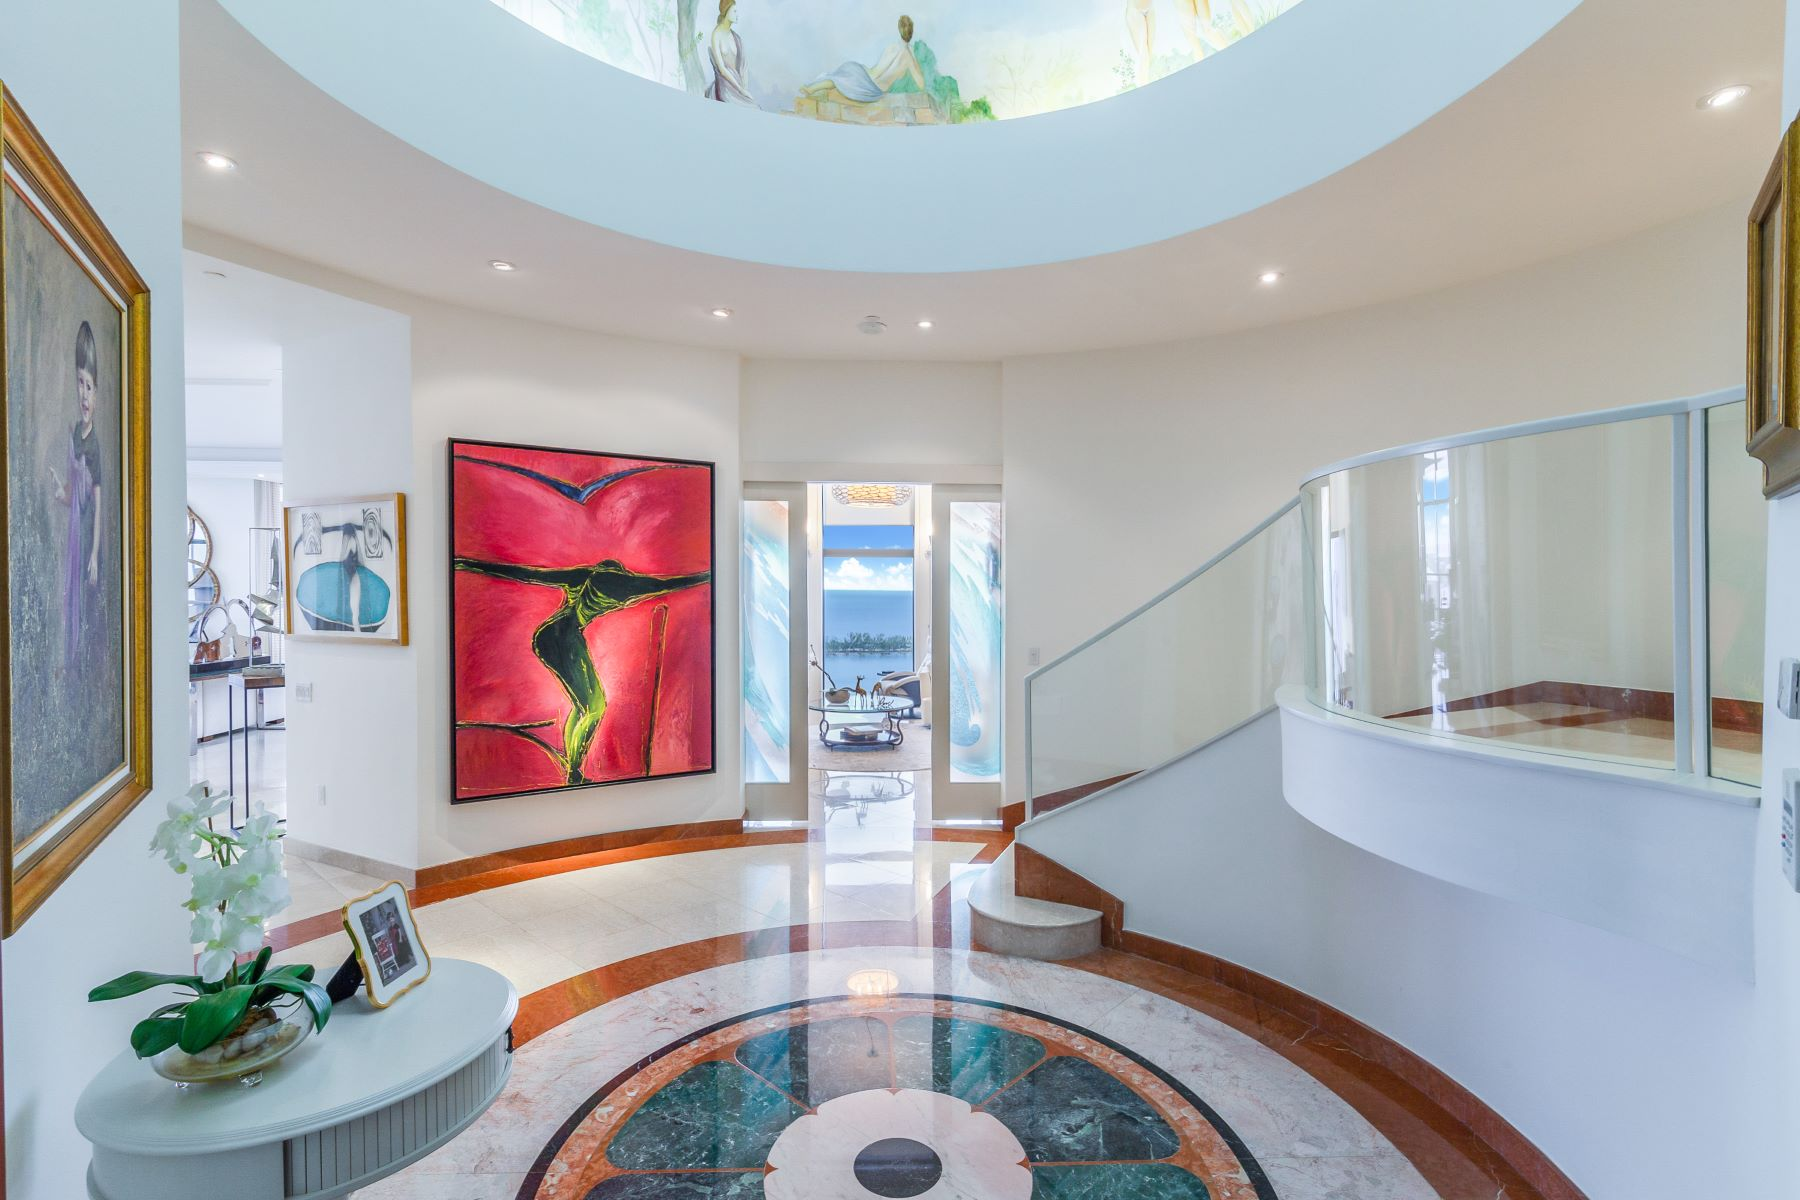 Flat for Sale at 1581 Brickell Ave 1581 Brickell Ave T-201 Miami, Florida 33129 United States